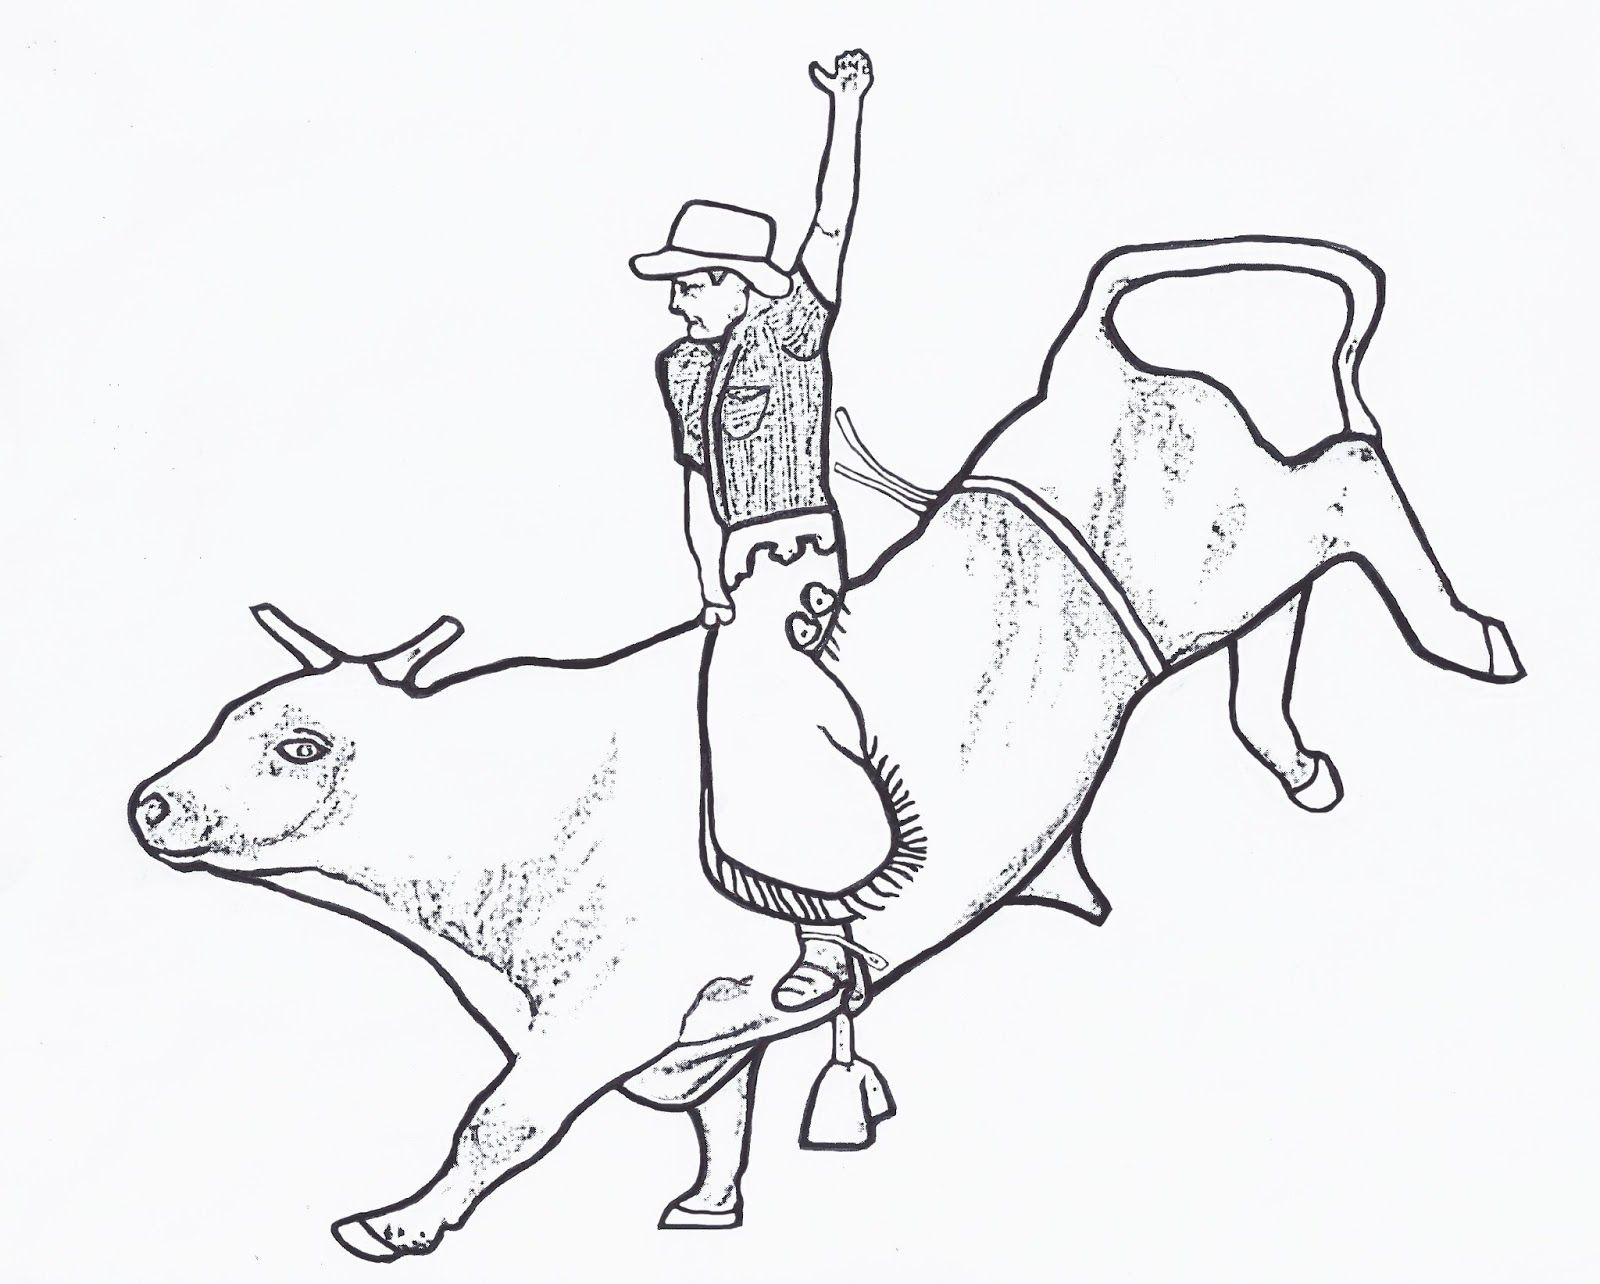 bull riding coloring pages 02 | mason | Pinterest | Bull riding ...